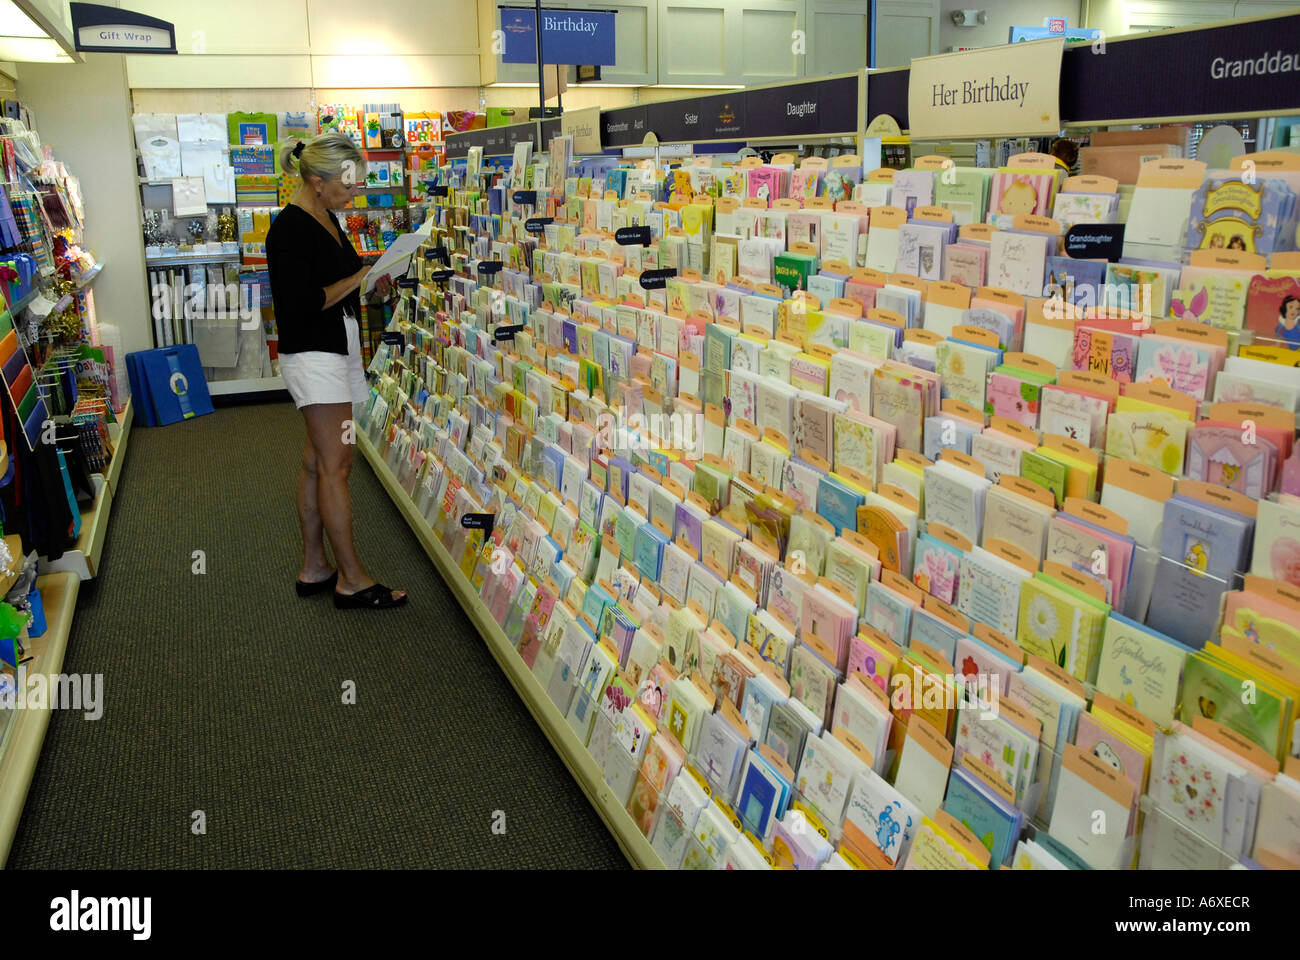 Greeting card display inside a retail store stock photo 11664502 greeting card display inside a retail store kristyandbryce Choice Image